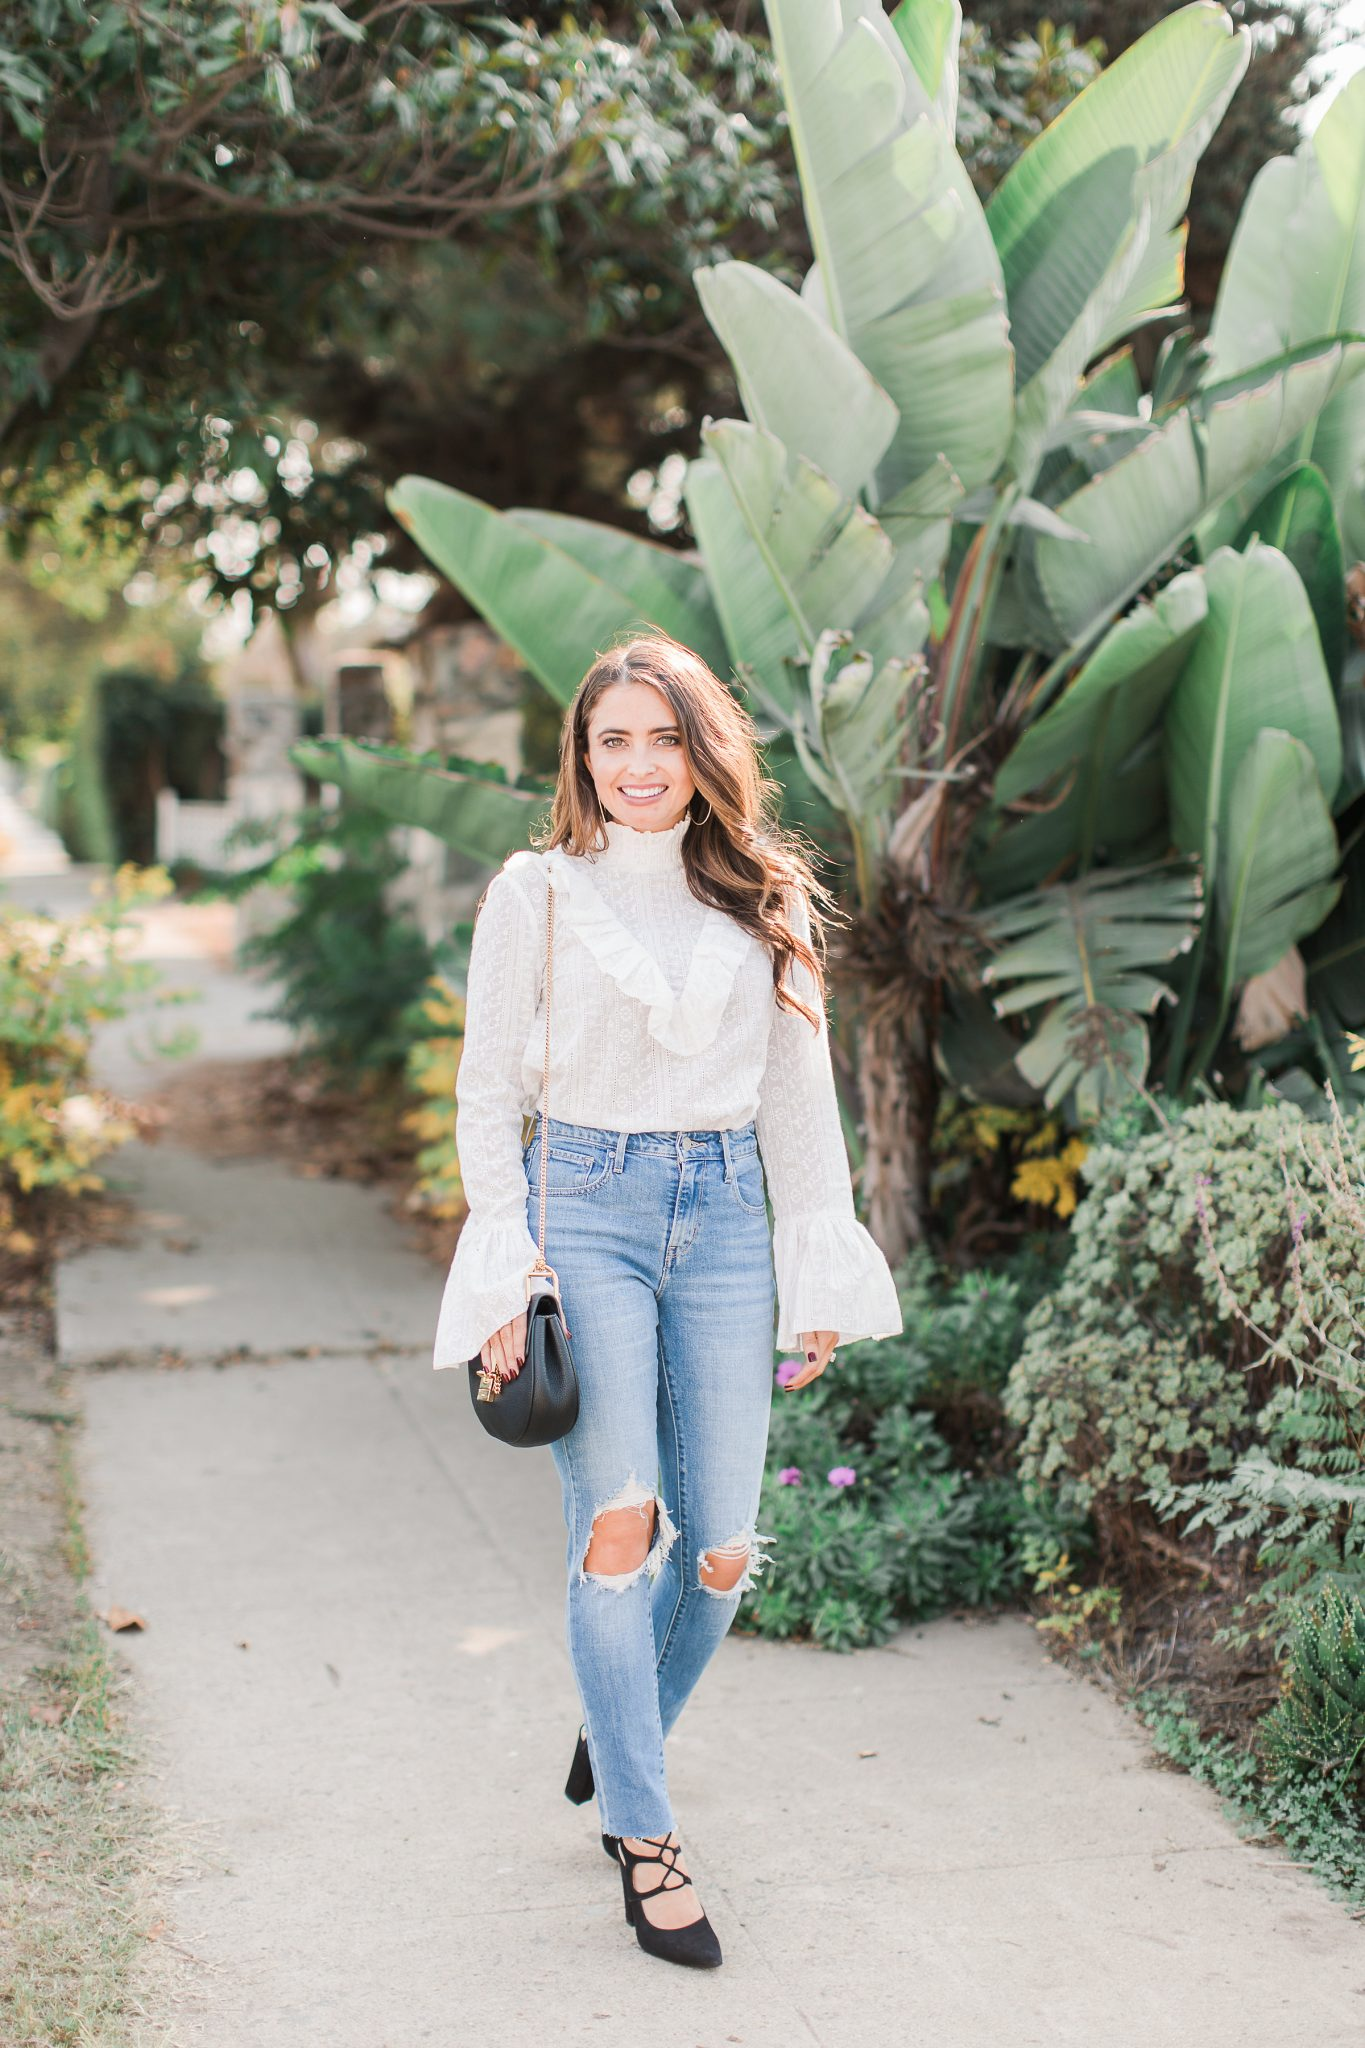 Maxie Elle | White lace top & distressed denim - New Year Resolutions by popular Orange County blogger Maxie Elise